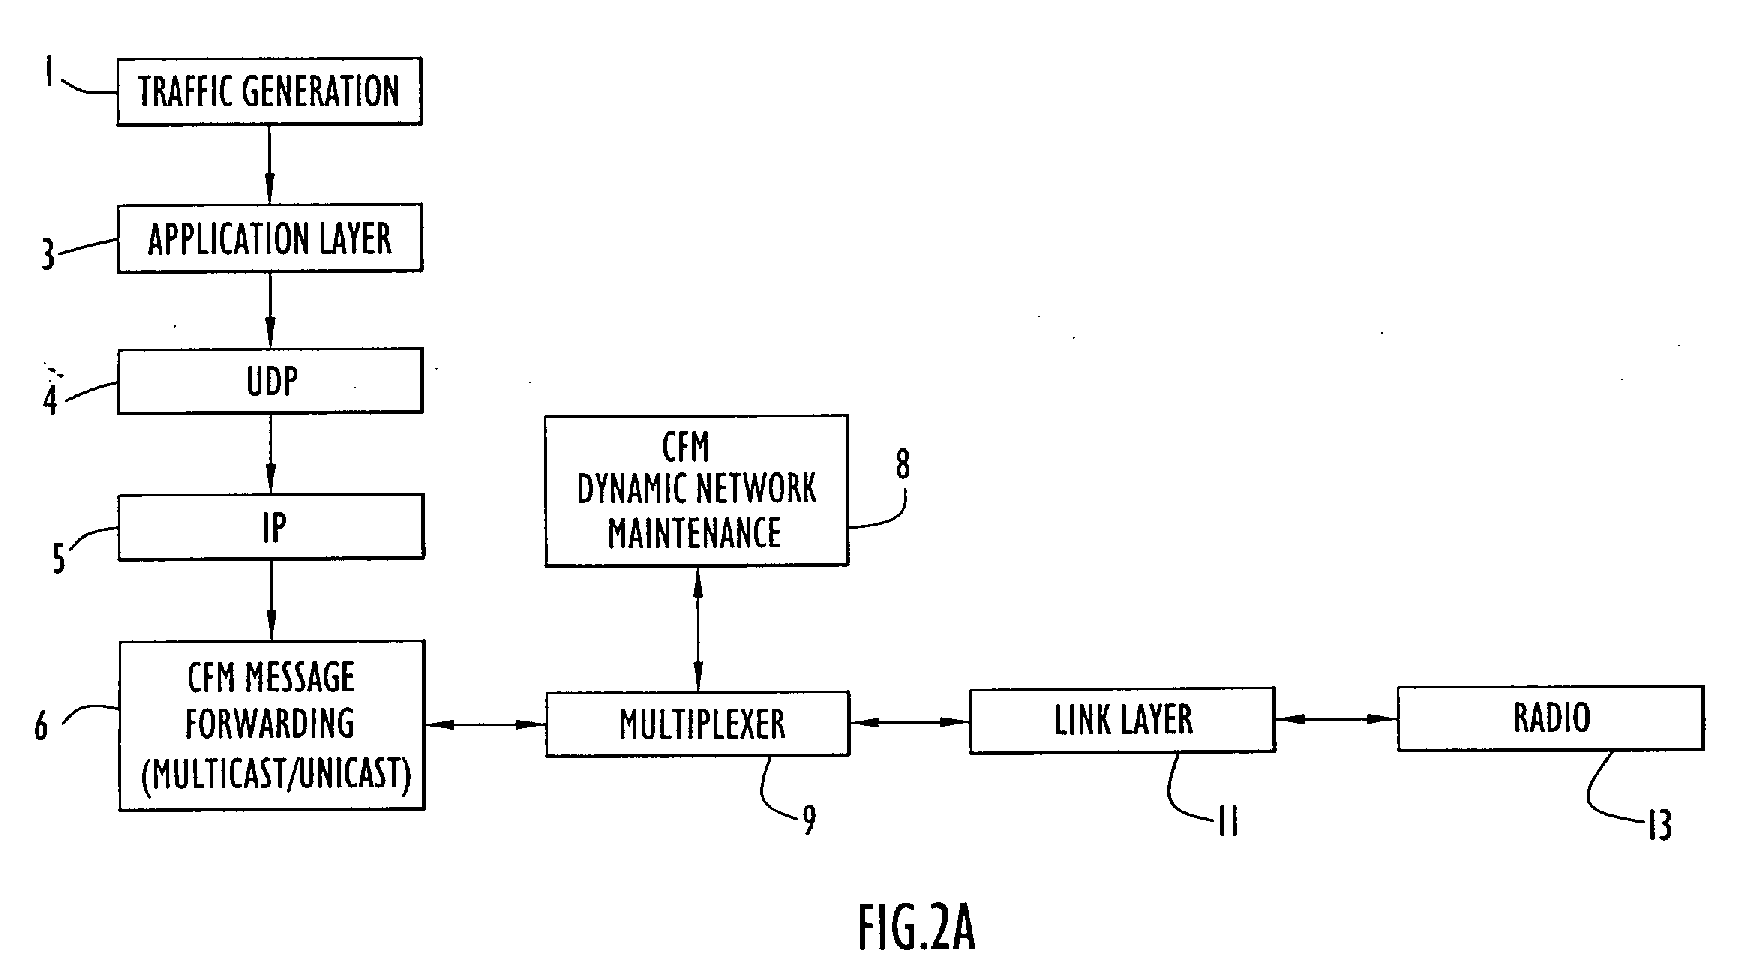 EP1324532A2 - Method and apparatus for on demand multicast